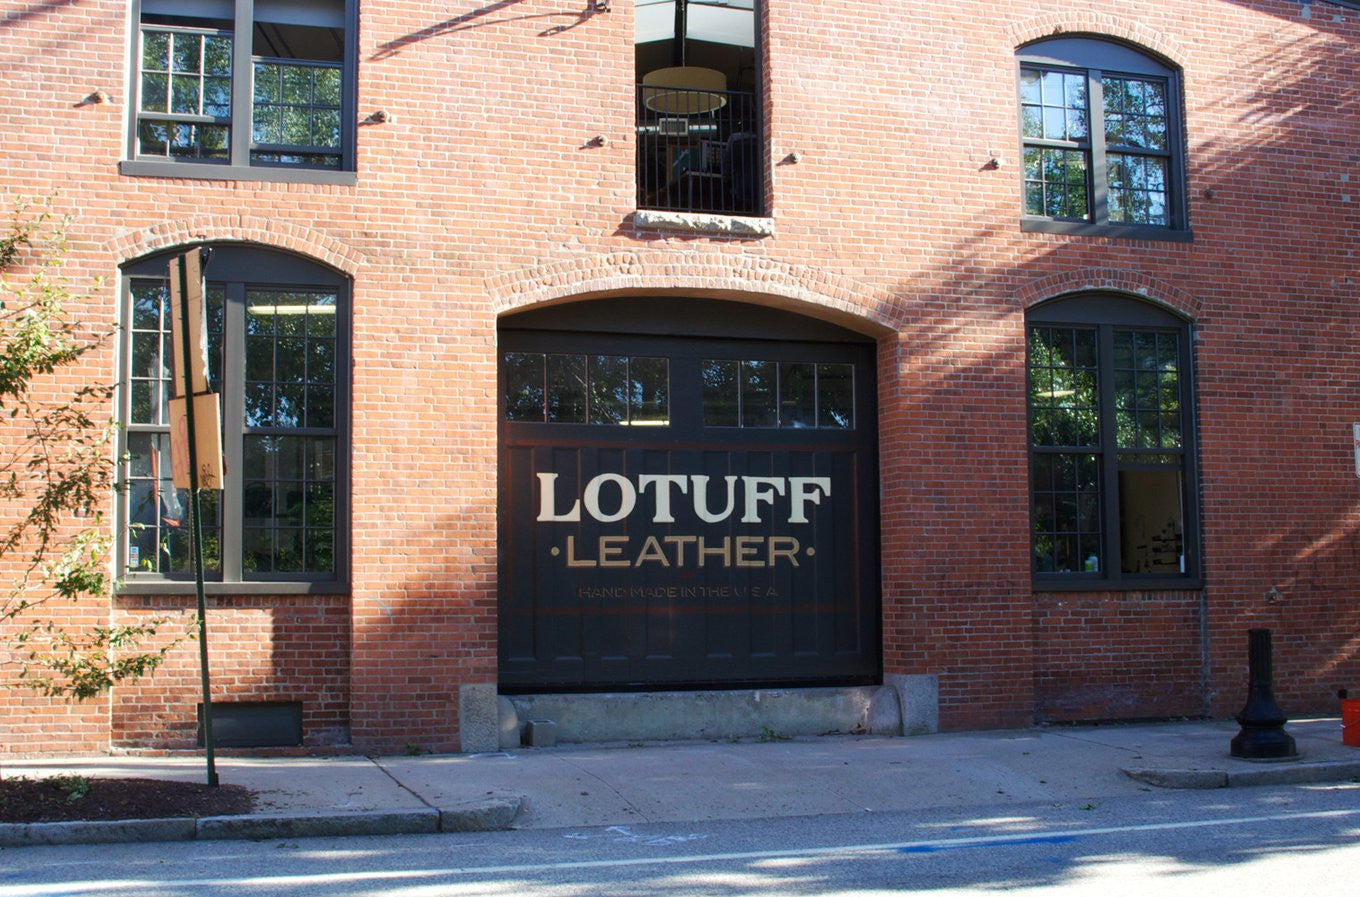 Lotuff Leather Building